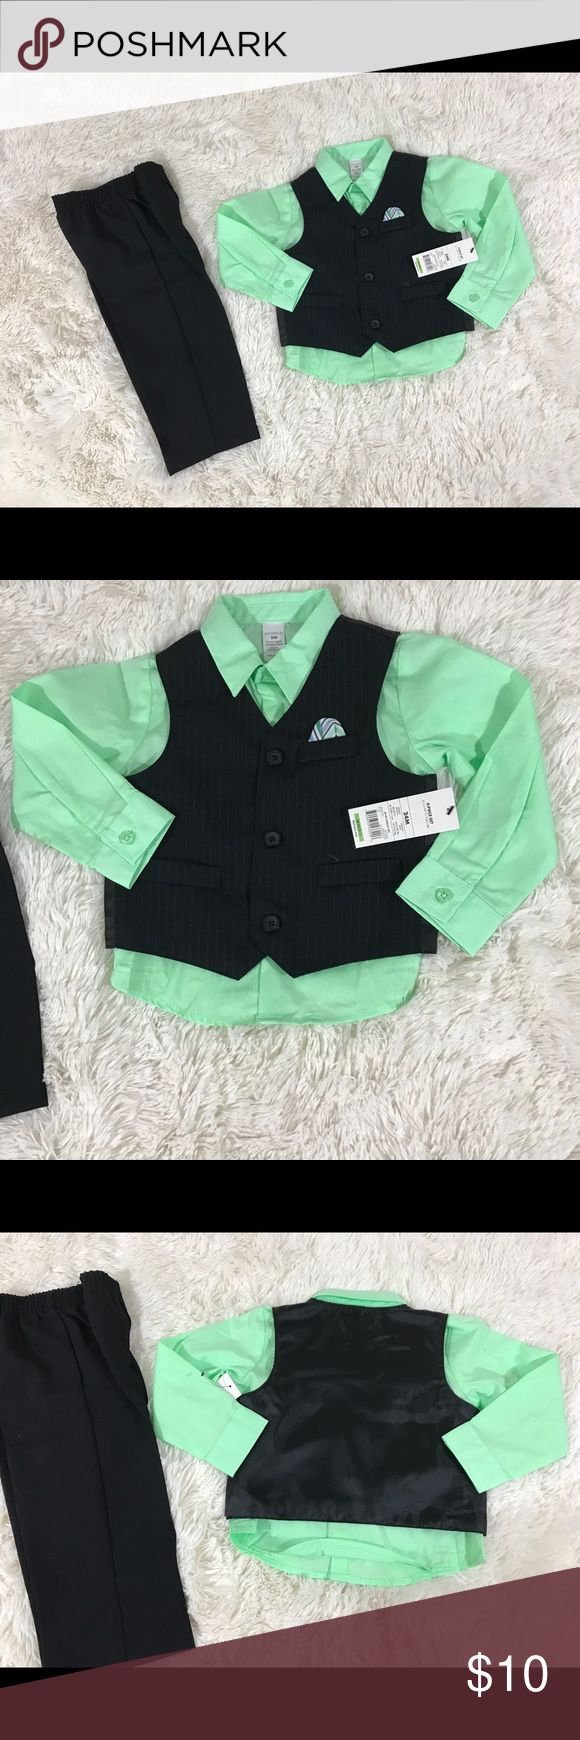 Baby boys toddler suit New with tags George Matching Sets